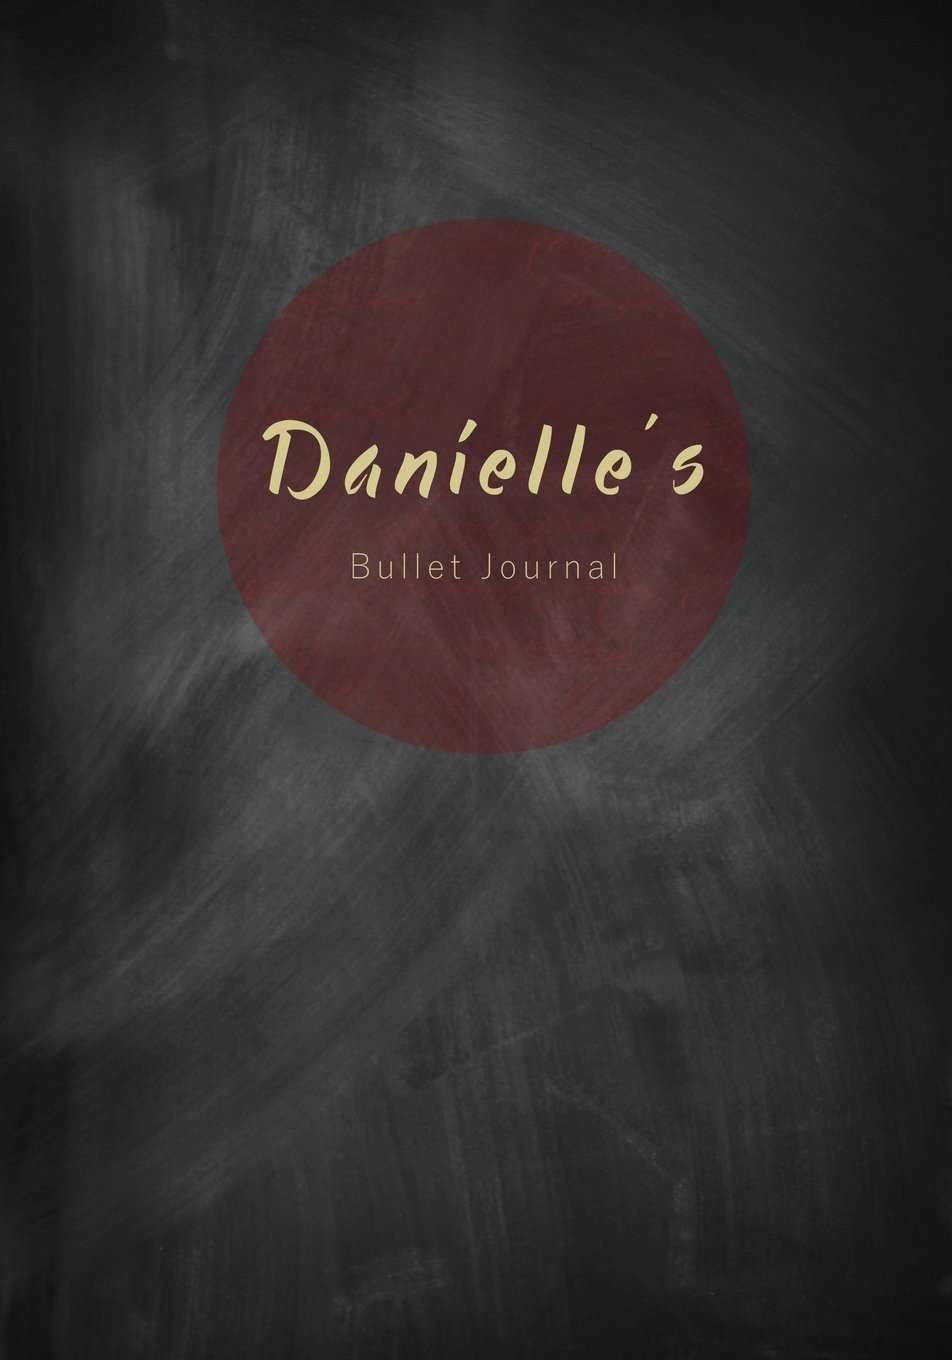 Danielle's Bullet Journal: A Personalized Name Dot Grid Notebook/Planner/Organizer (7x10 Inches) (Cute Notebooks, Journals and Other Unique Birthday Best Friend and Other Women and Teen Girls) pdf